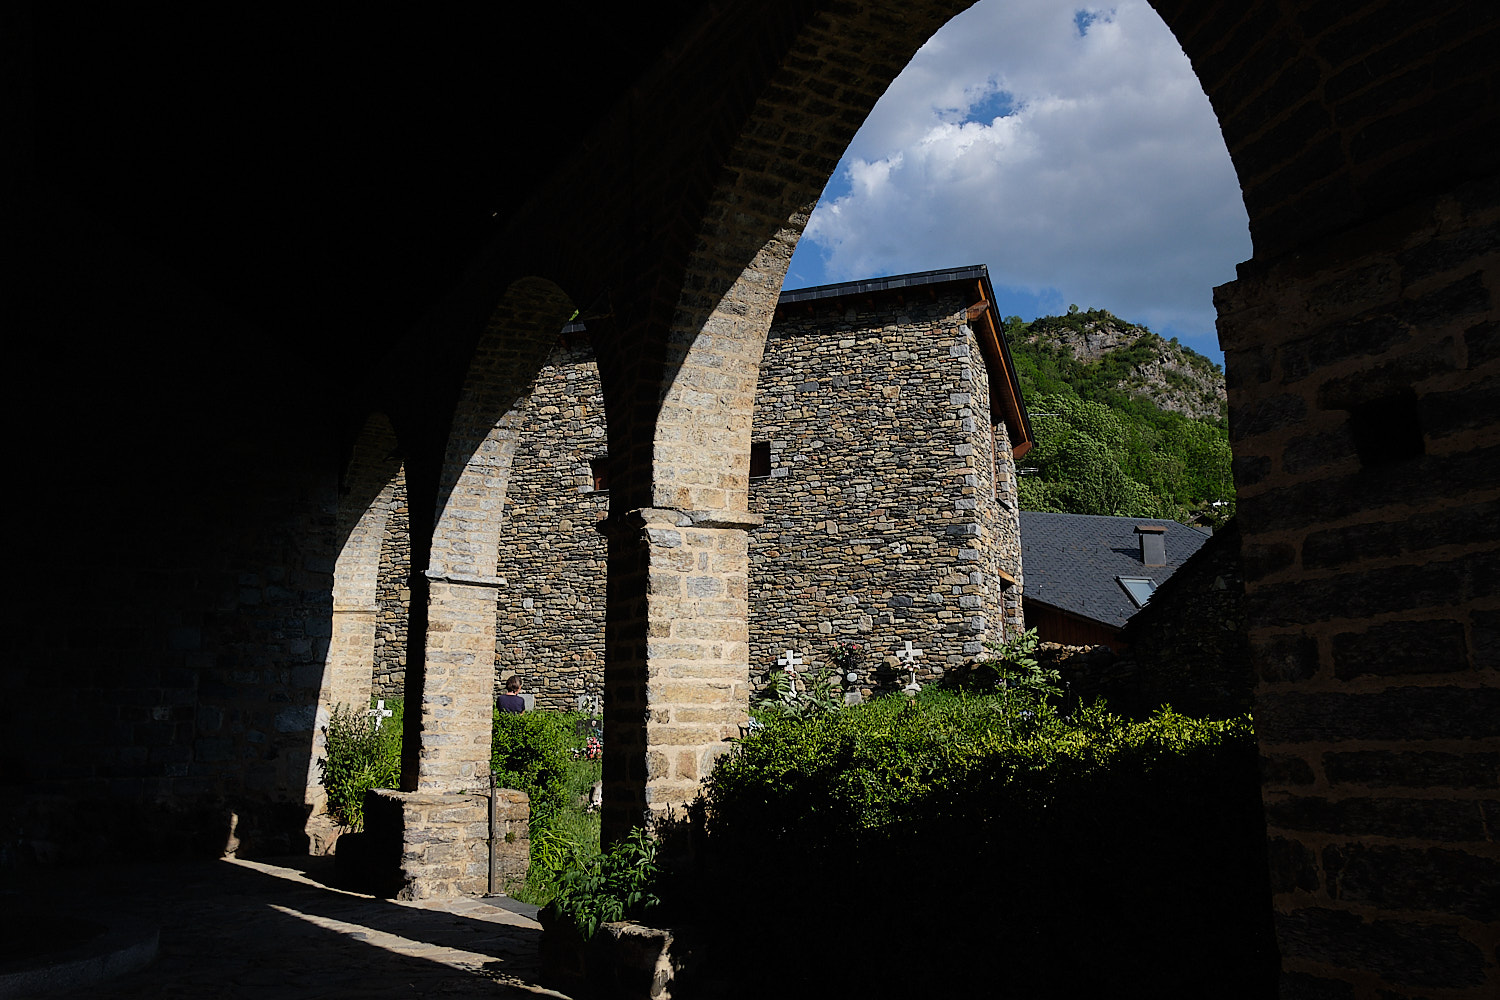 Romanesque church entrance archs and shade in the sunset in Barruera and Durro, Vall de Boí, Pyrenees, Spain